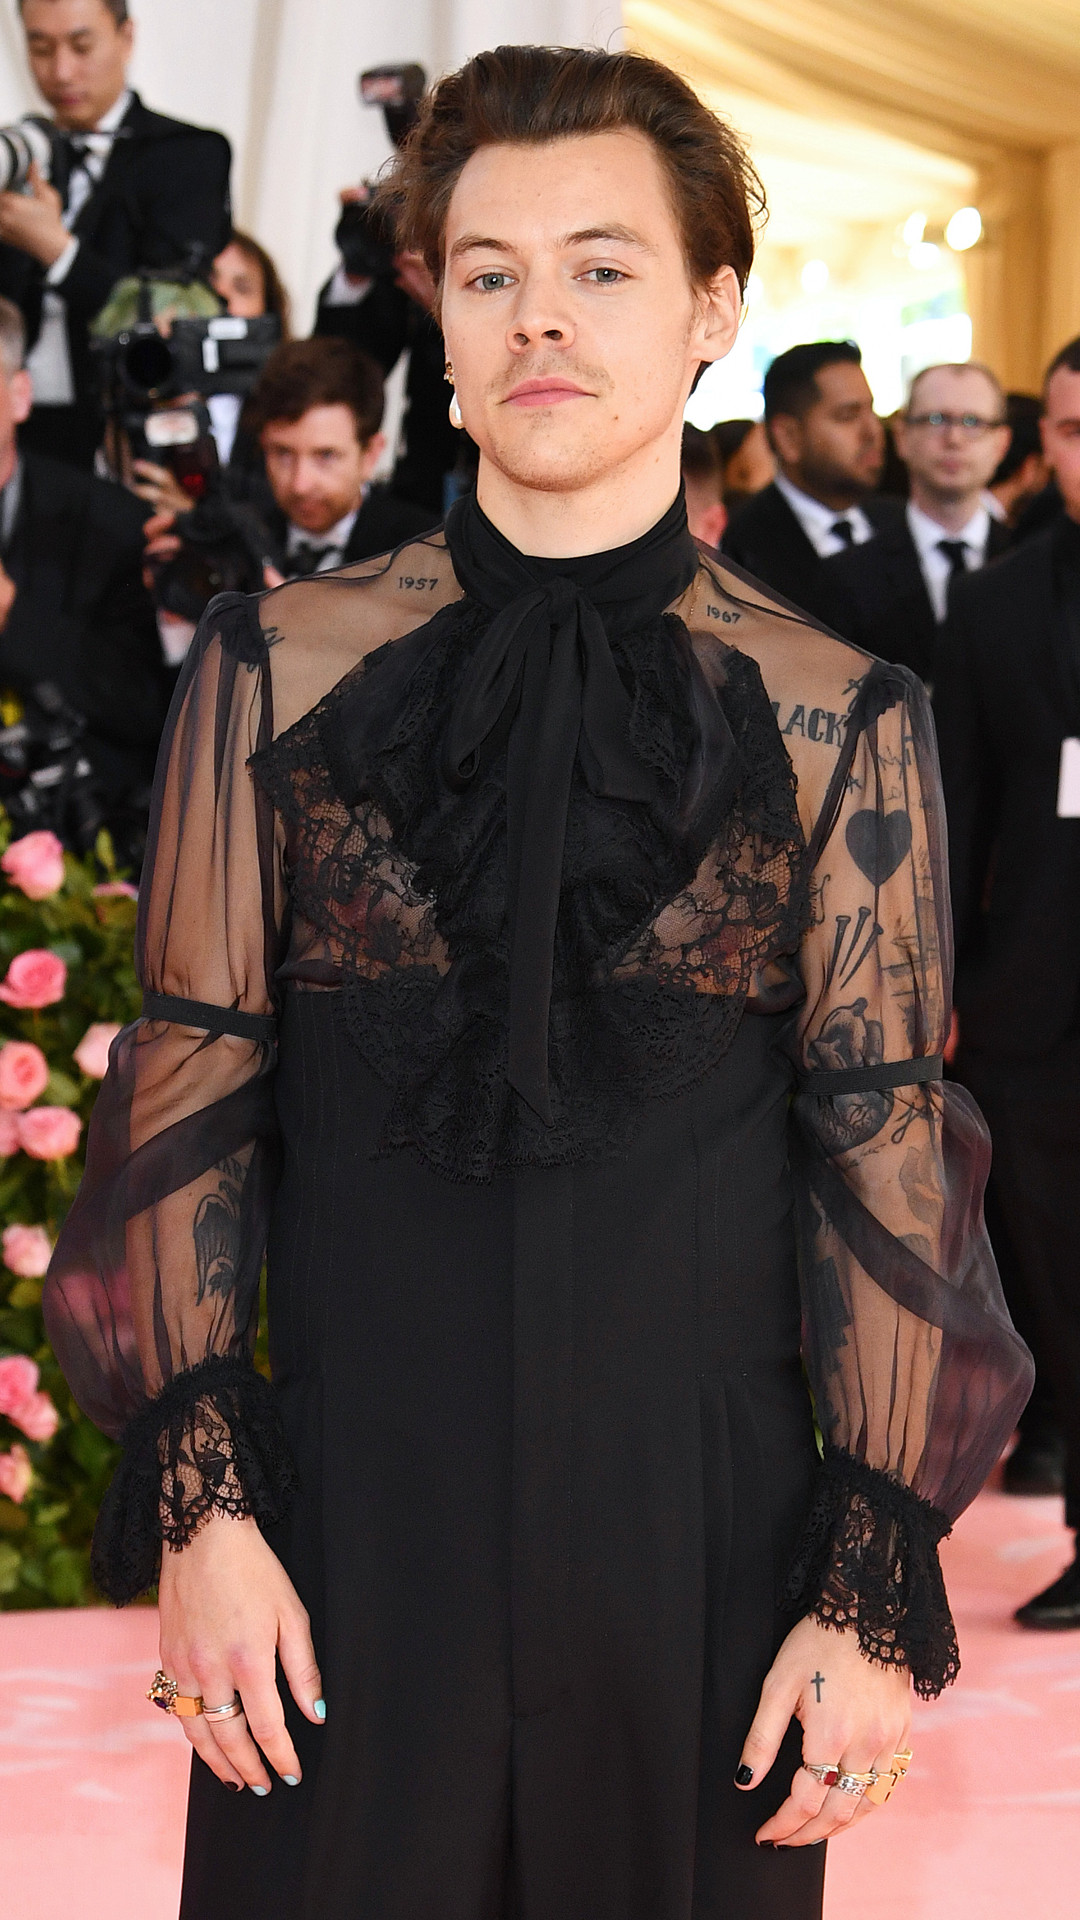 Harry Styles, 2019 Met Gala, Red Carpet Fashions